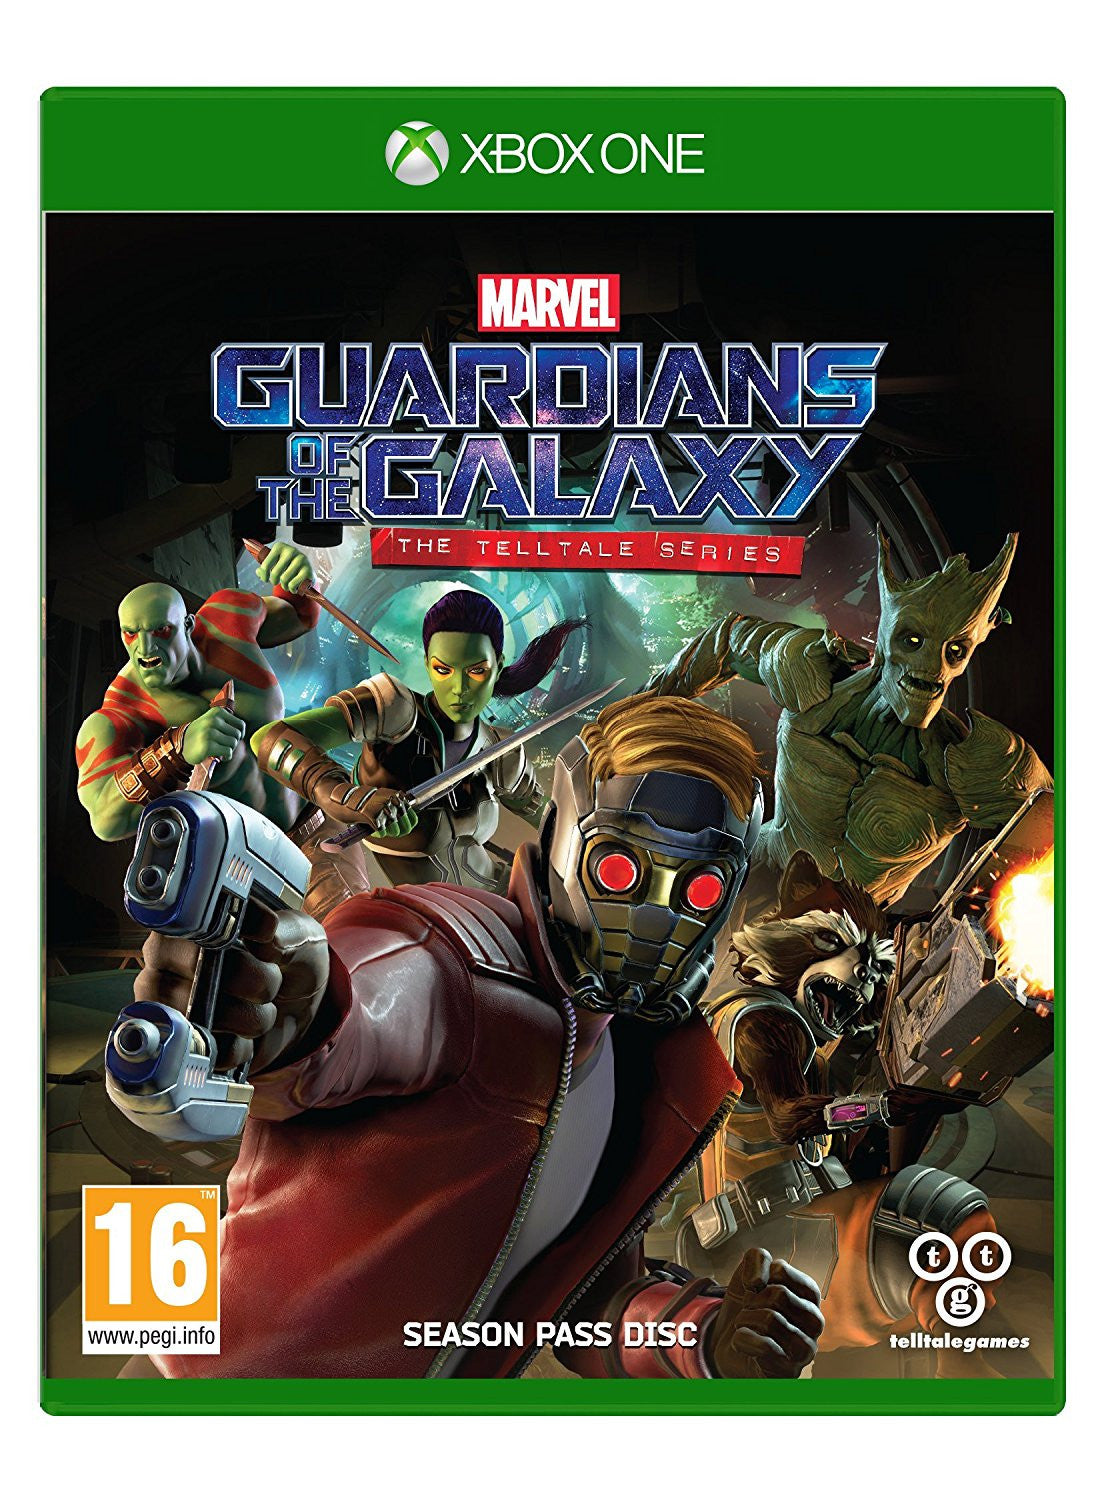 Marvel's Guardians of the Galaxy: The Telltale Series - Xbox One - Video Games by Warner Bros. Interactive Entertainment The Chelsea Gamer